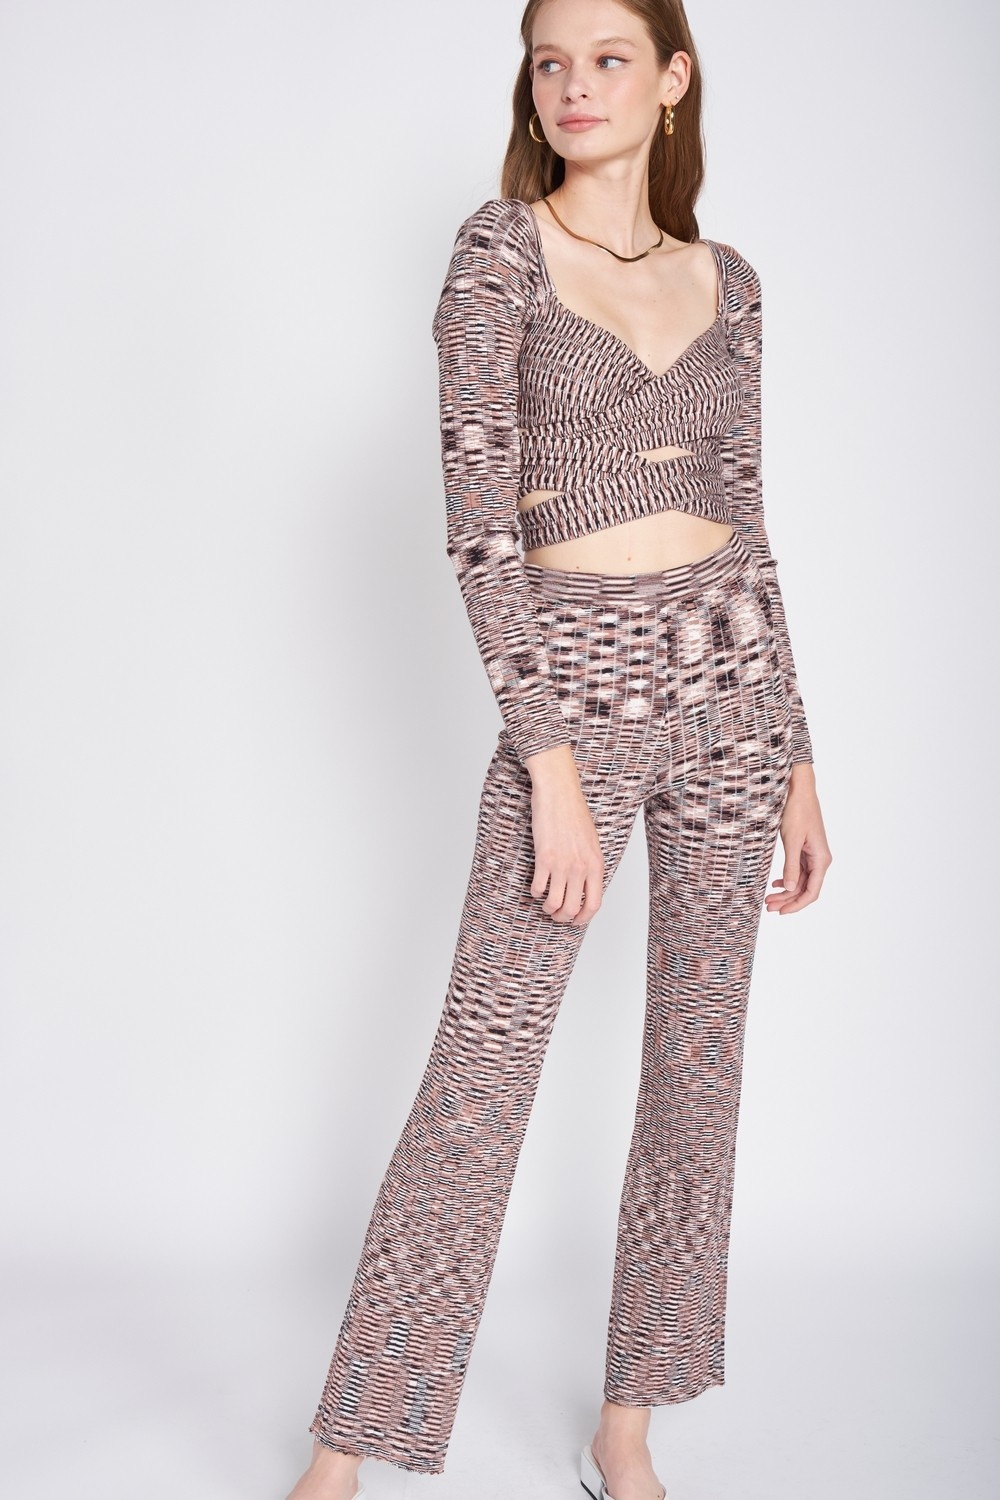 Pixelated Knit Wrap Top